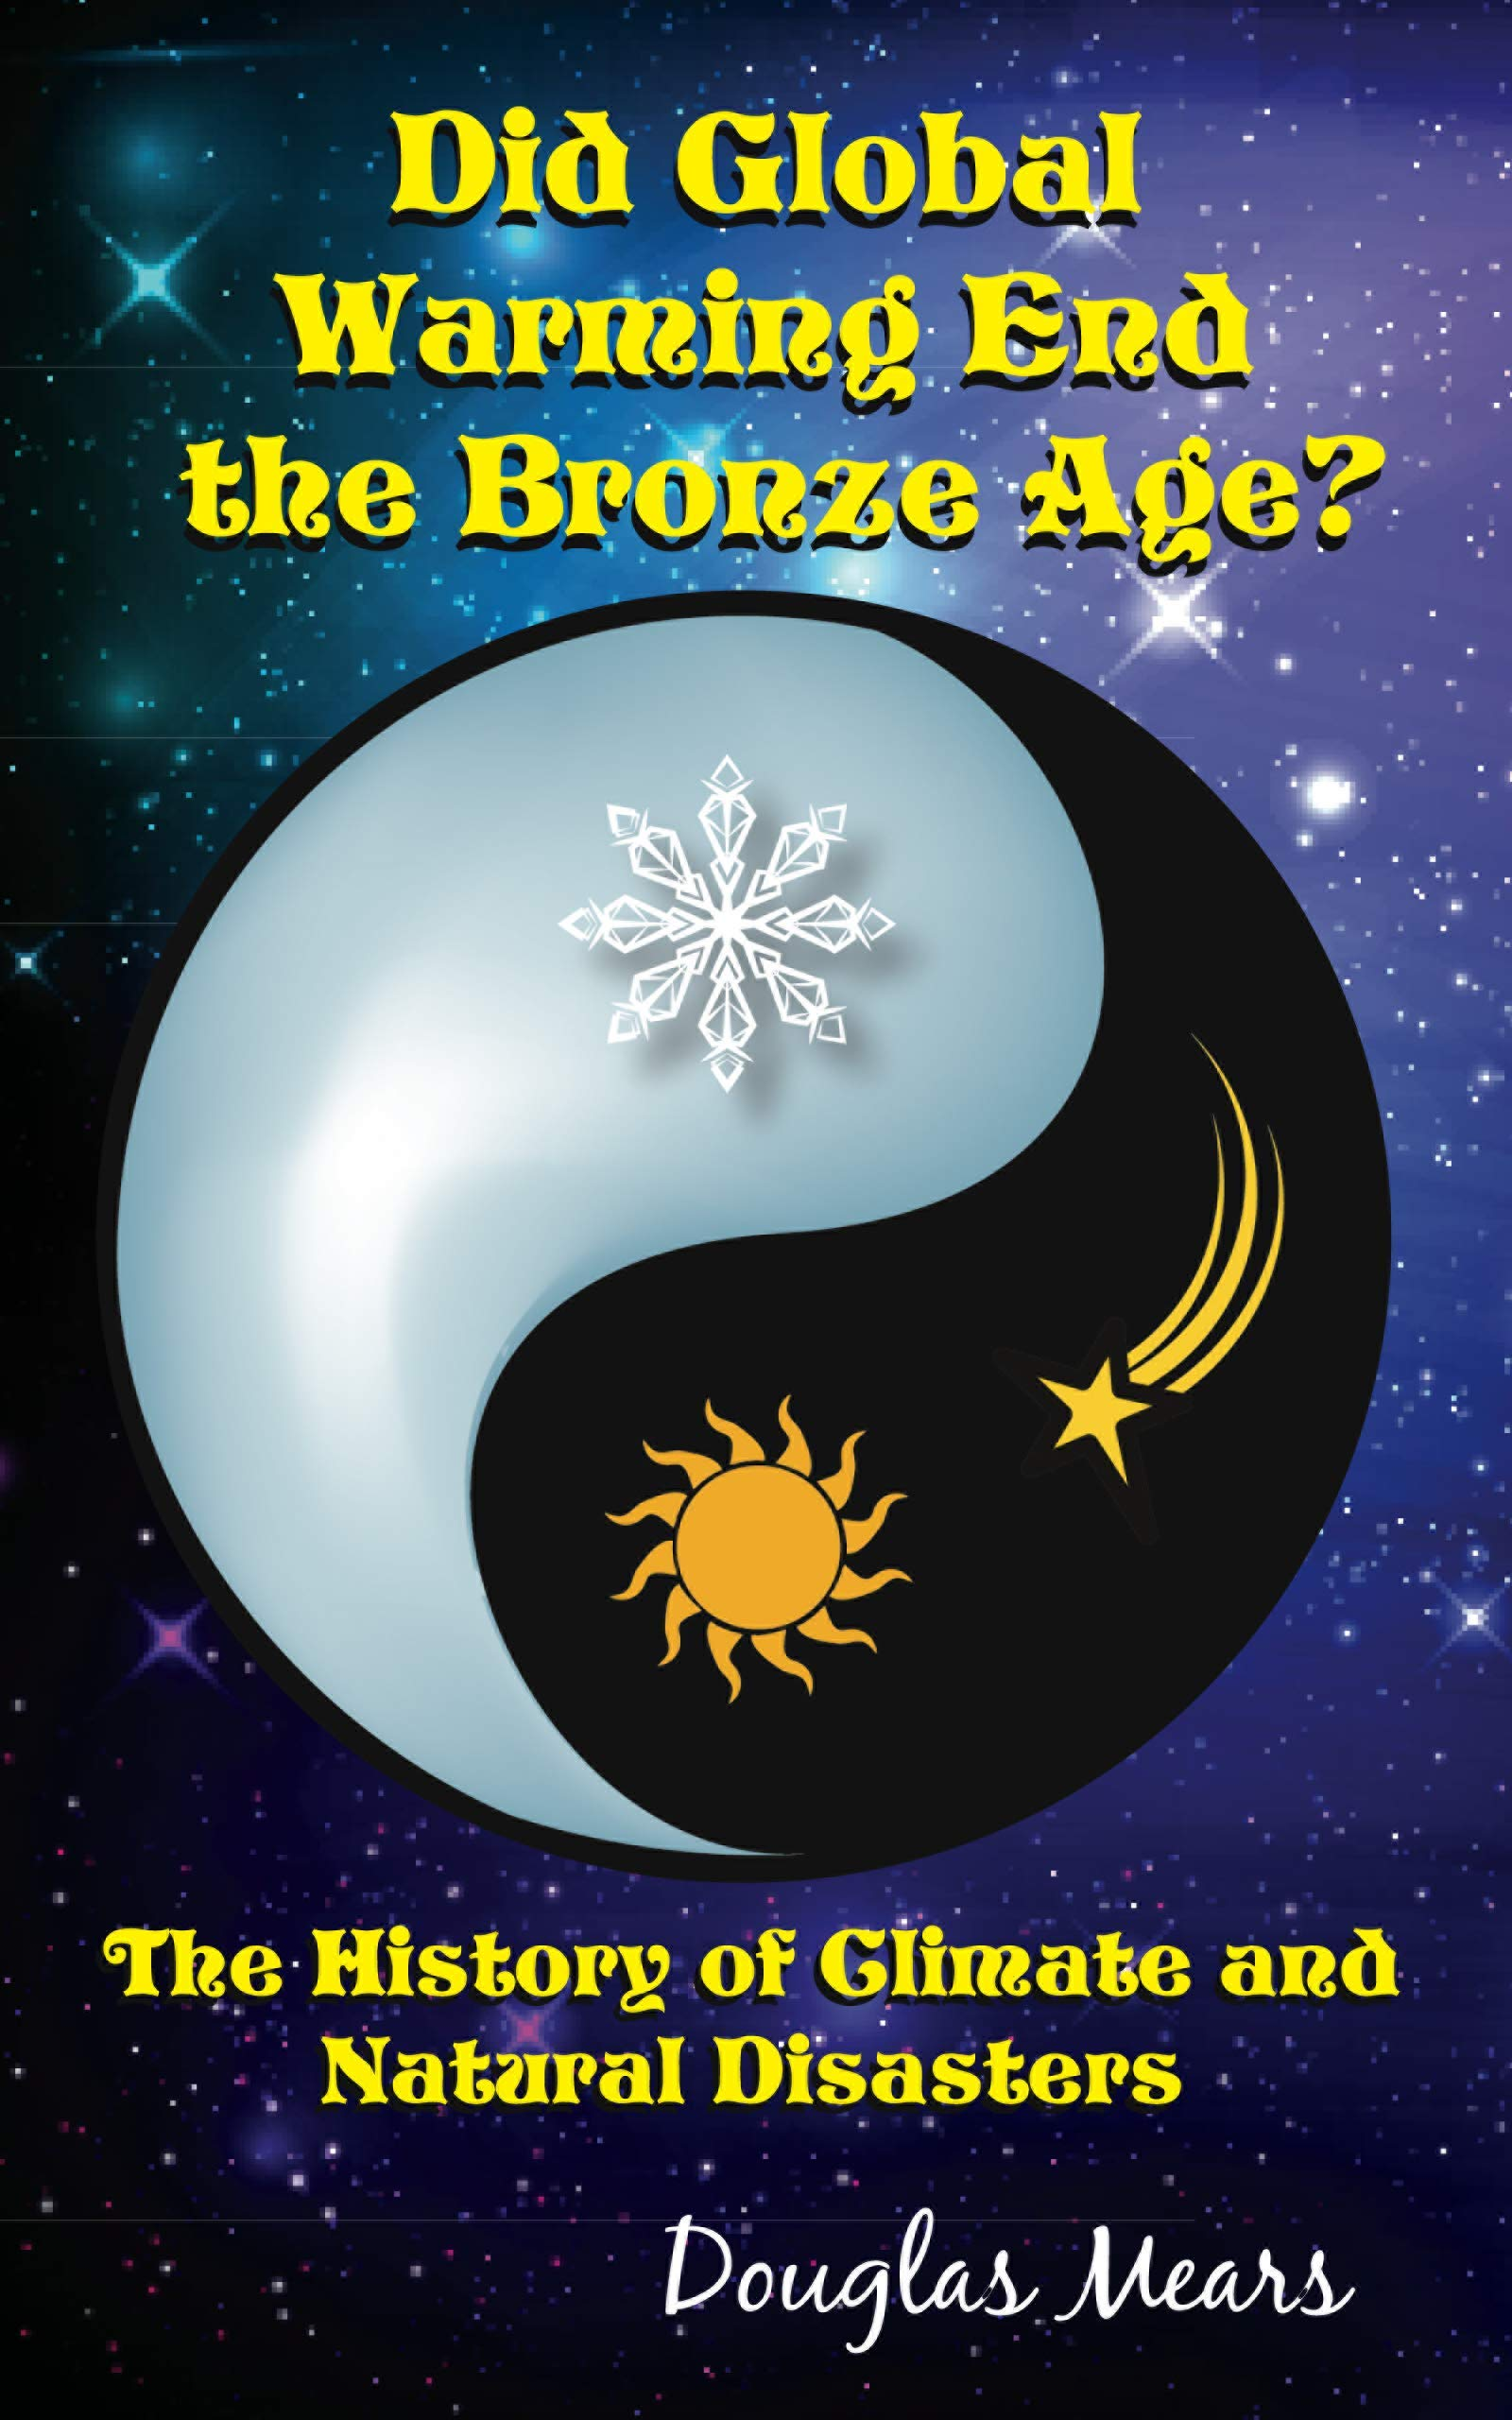 Did Global Warming End the Bronze Age?: The History of Climate and Natural Disasters